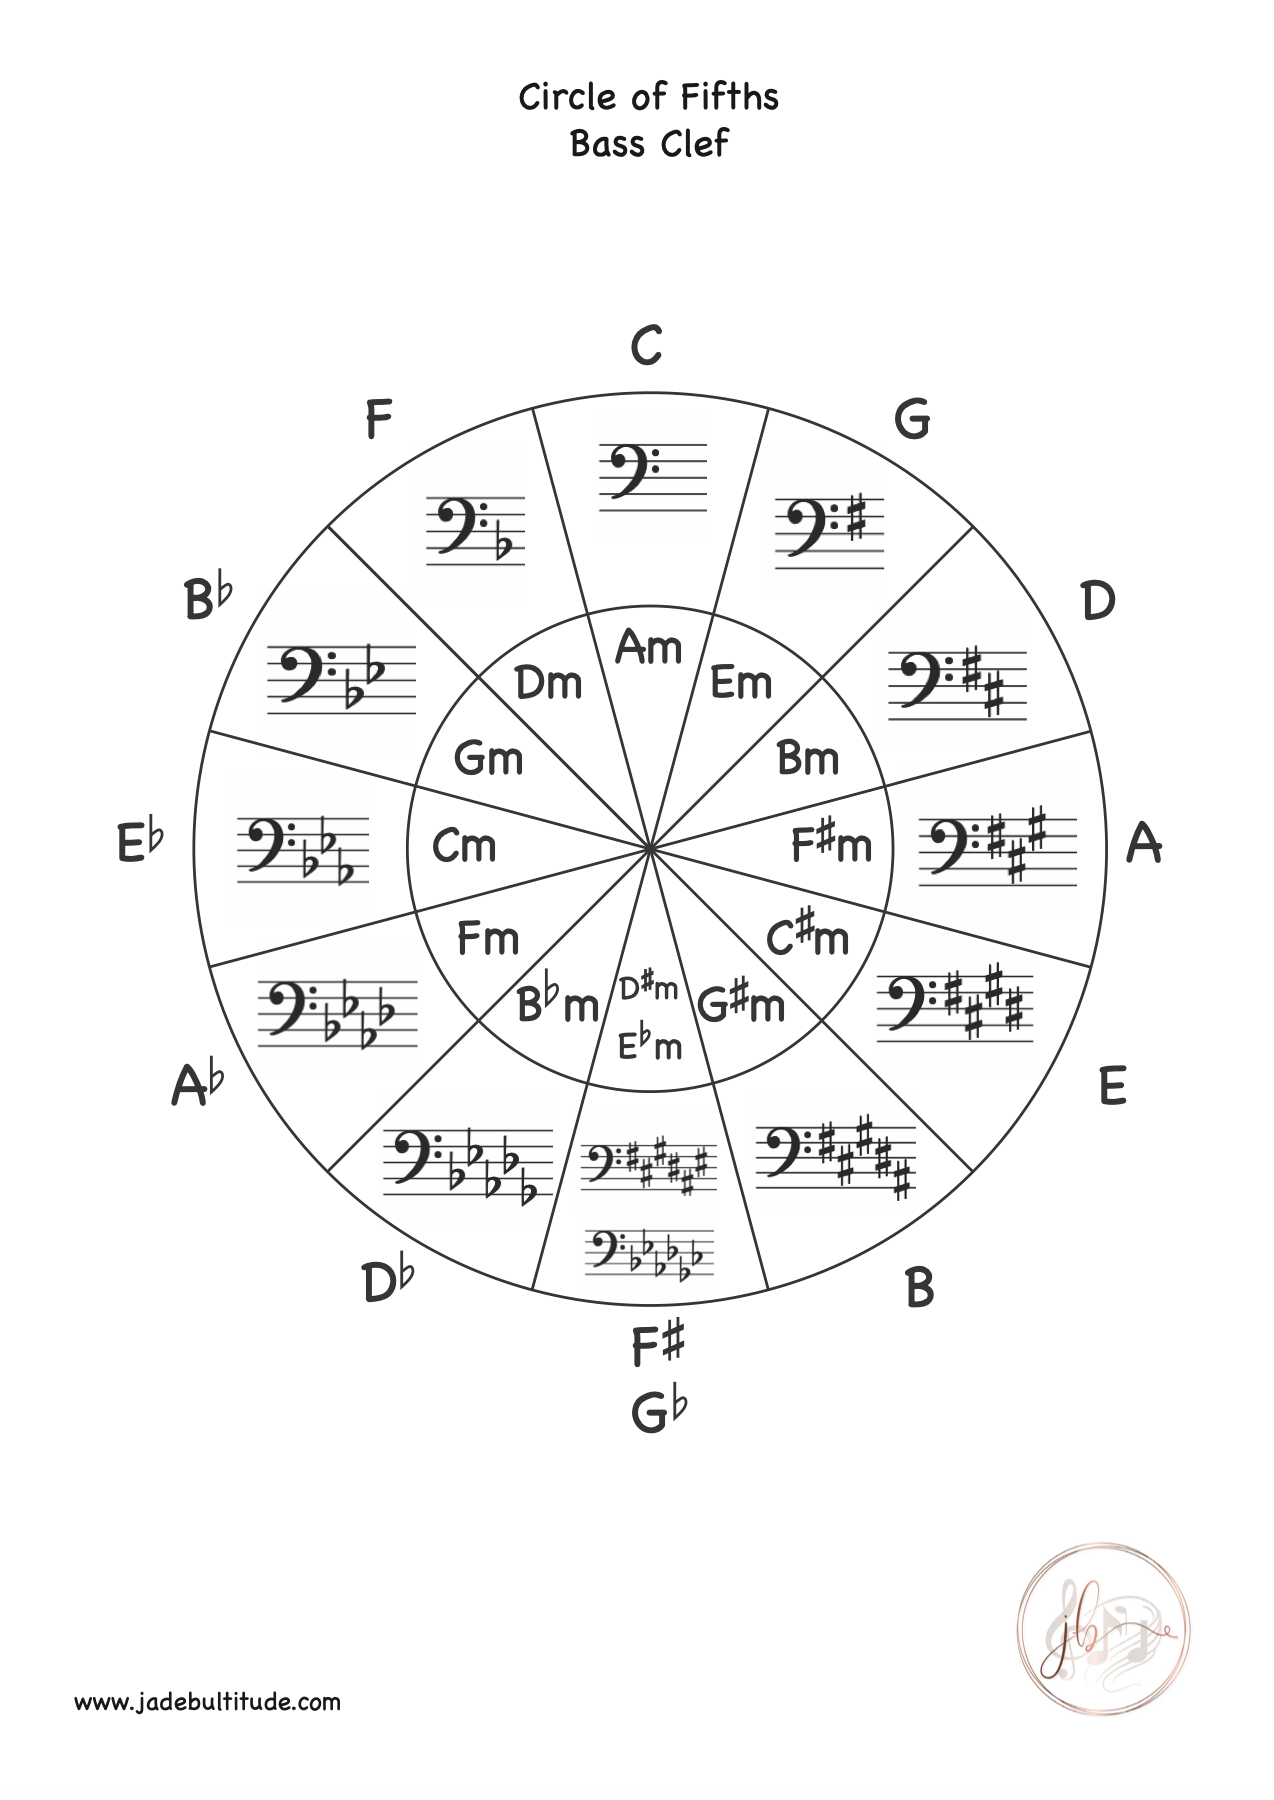 This is a free, printable music theory worksheet/resource